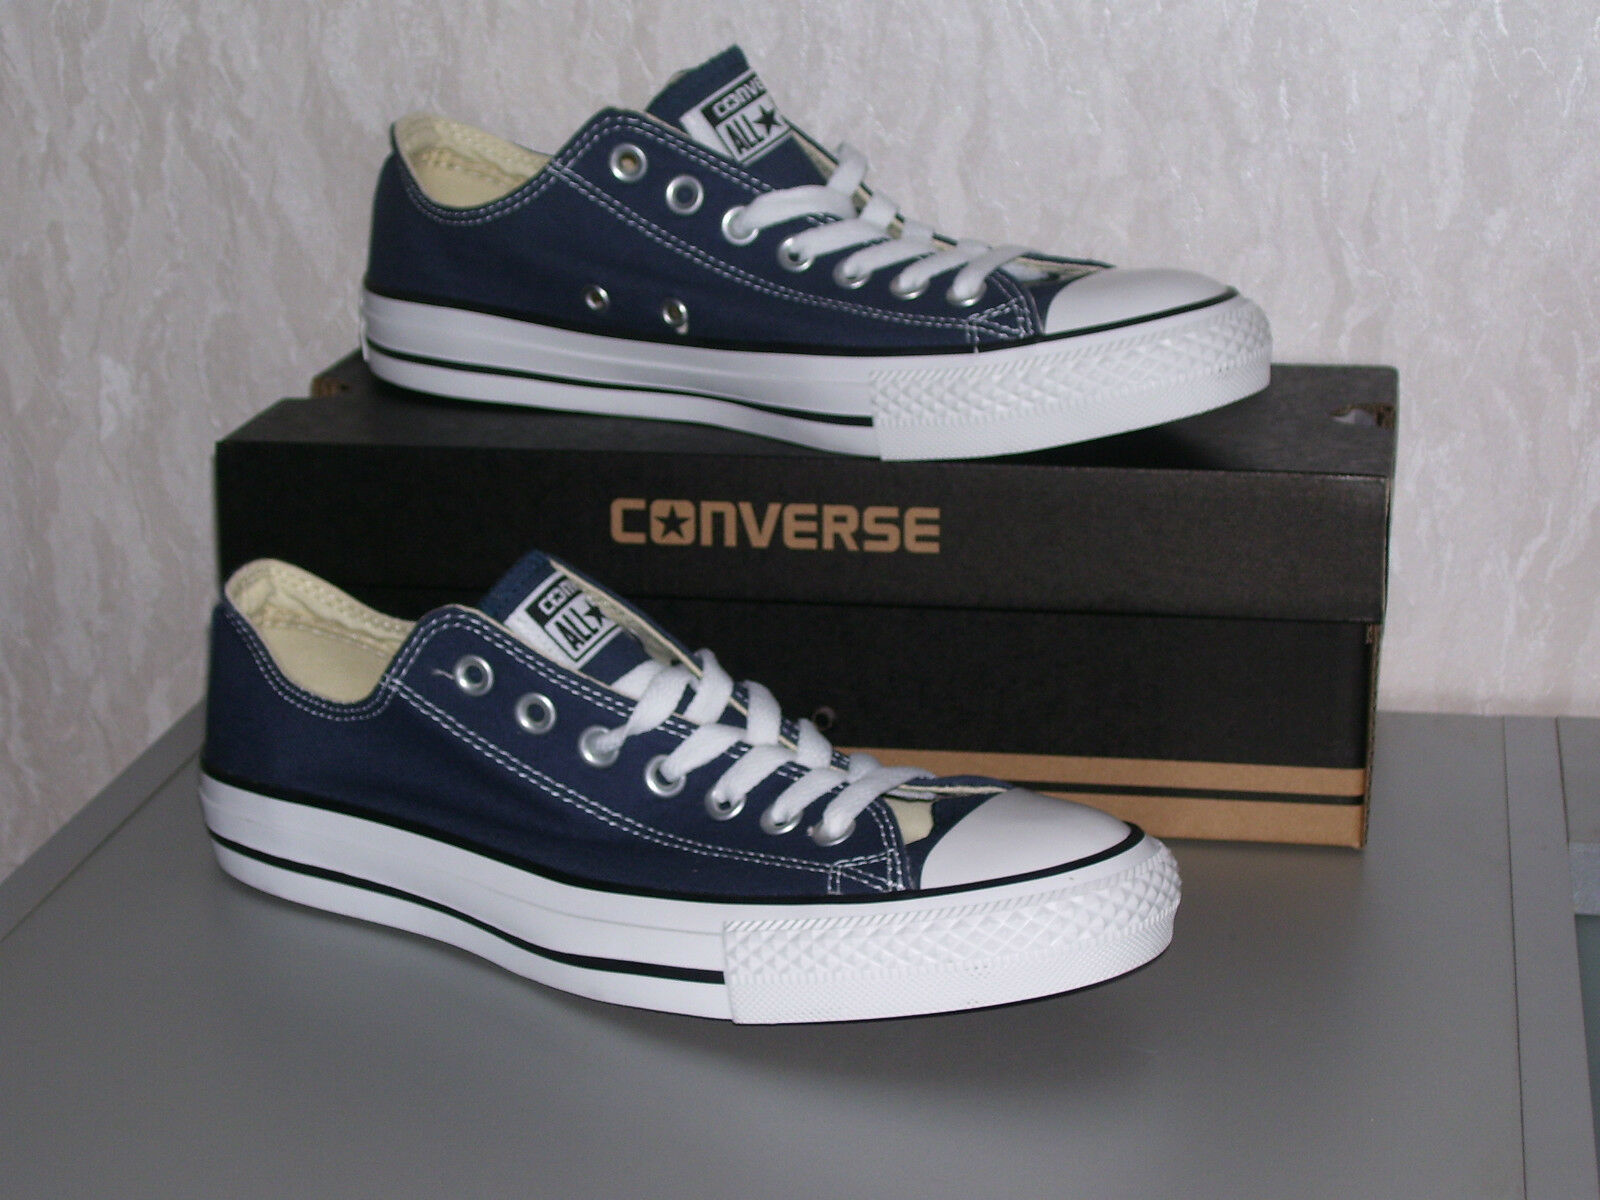 Converse All Star Chucks OX low navy blau dunkelblau Kult Grösse 36 bis 40 neu